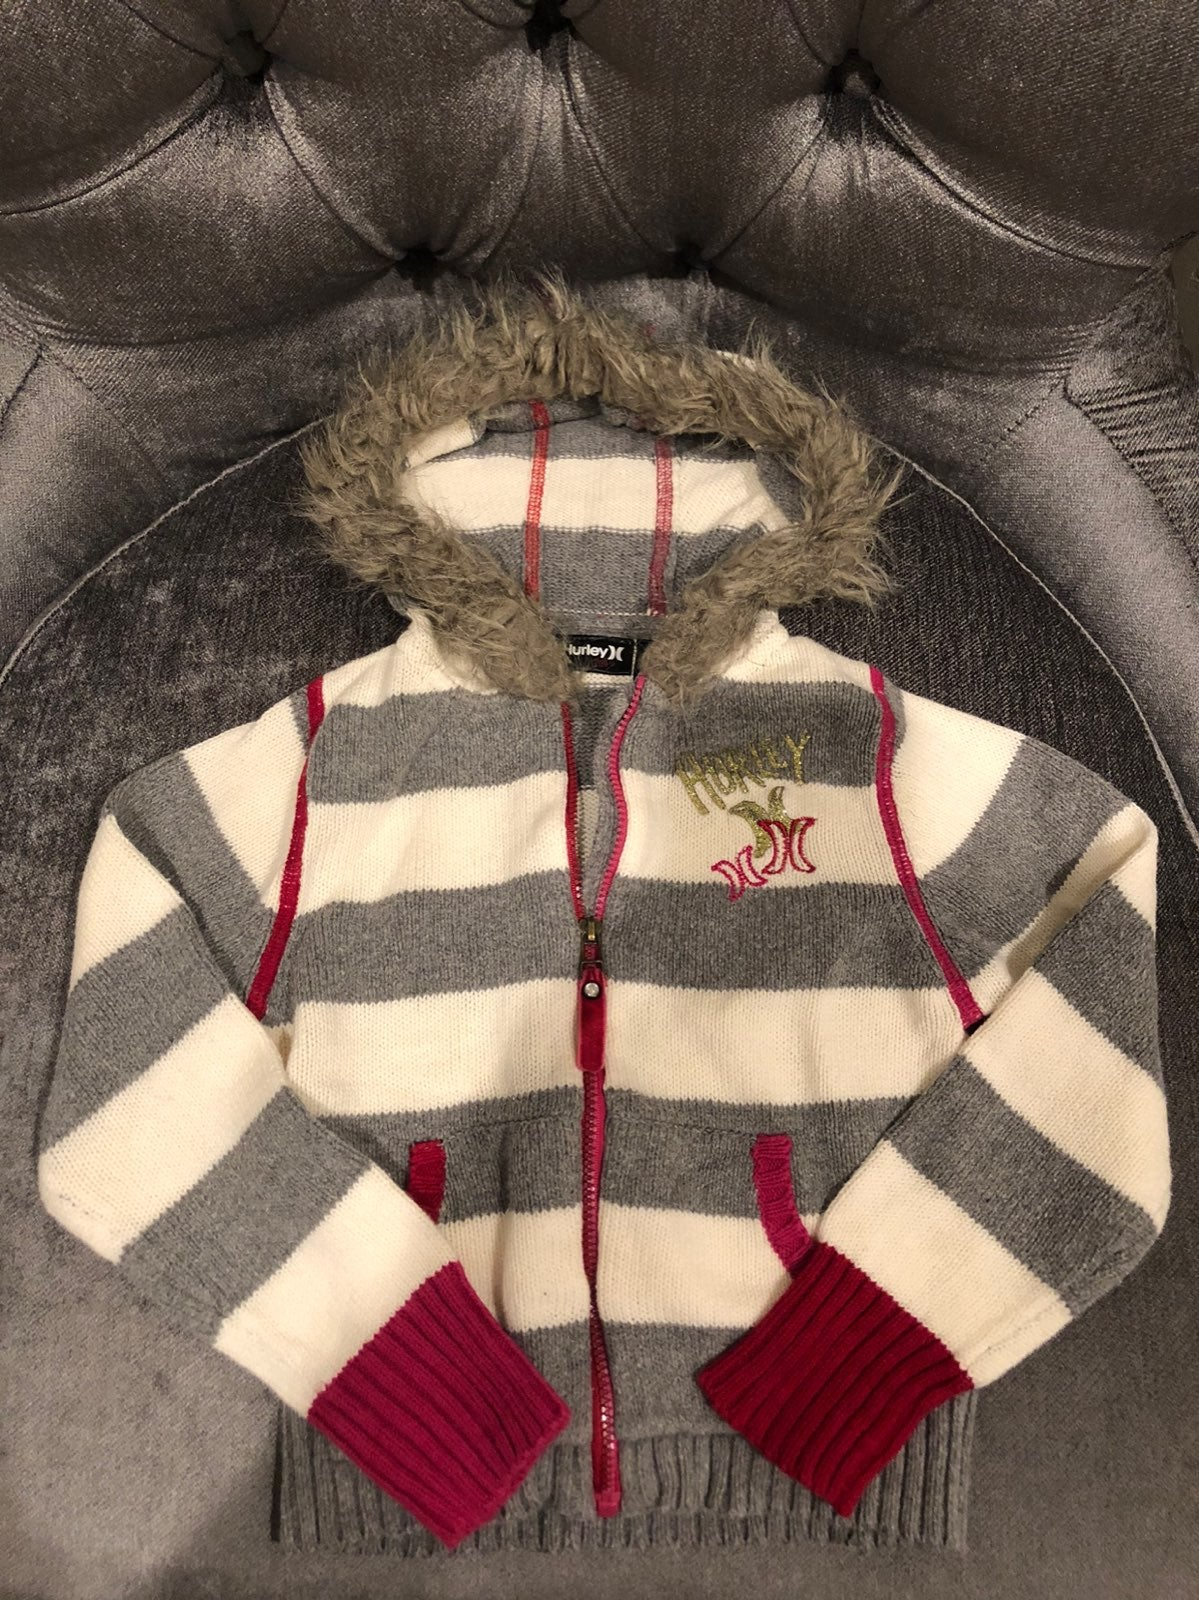 Hurley zipped hooded sweater 4t